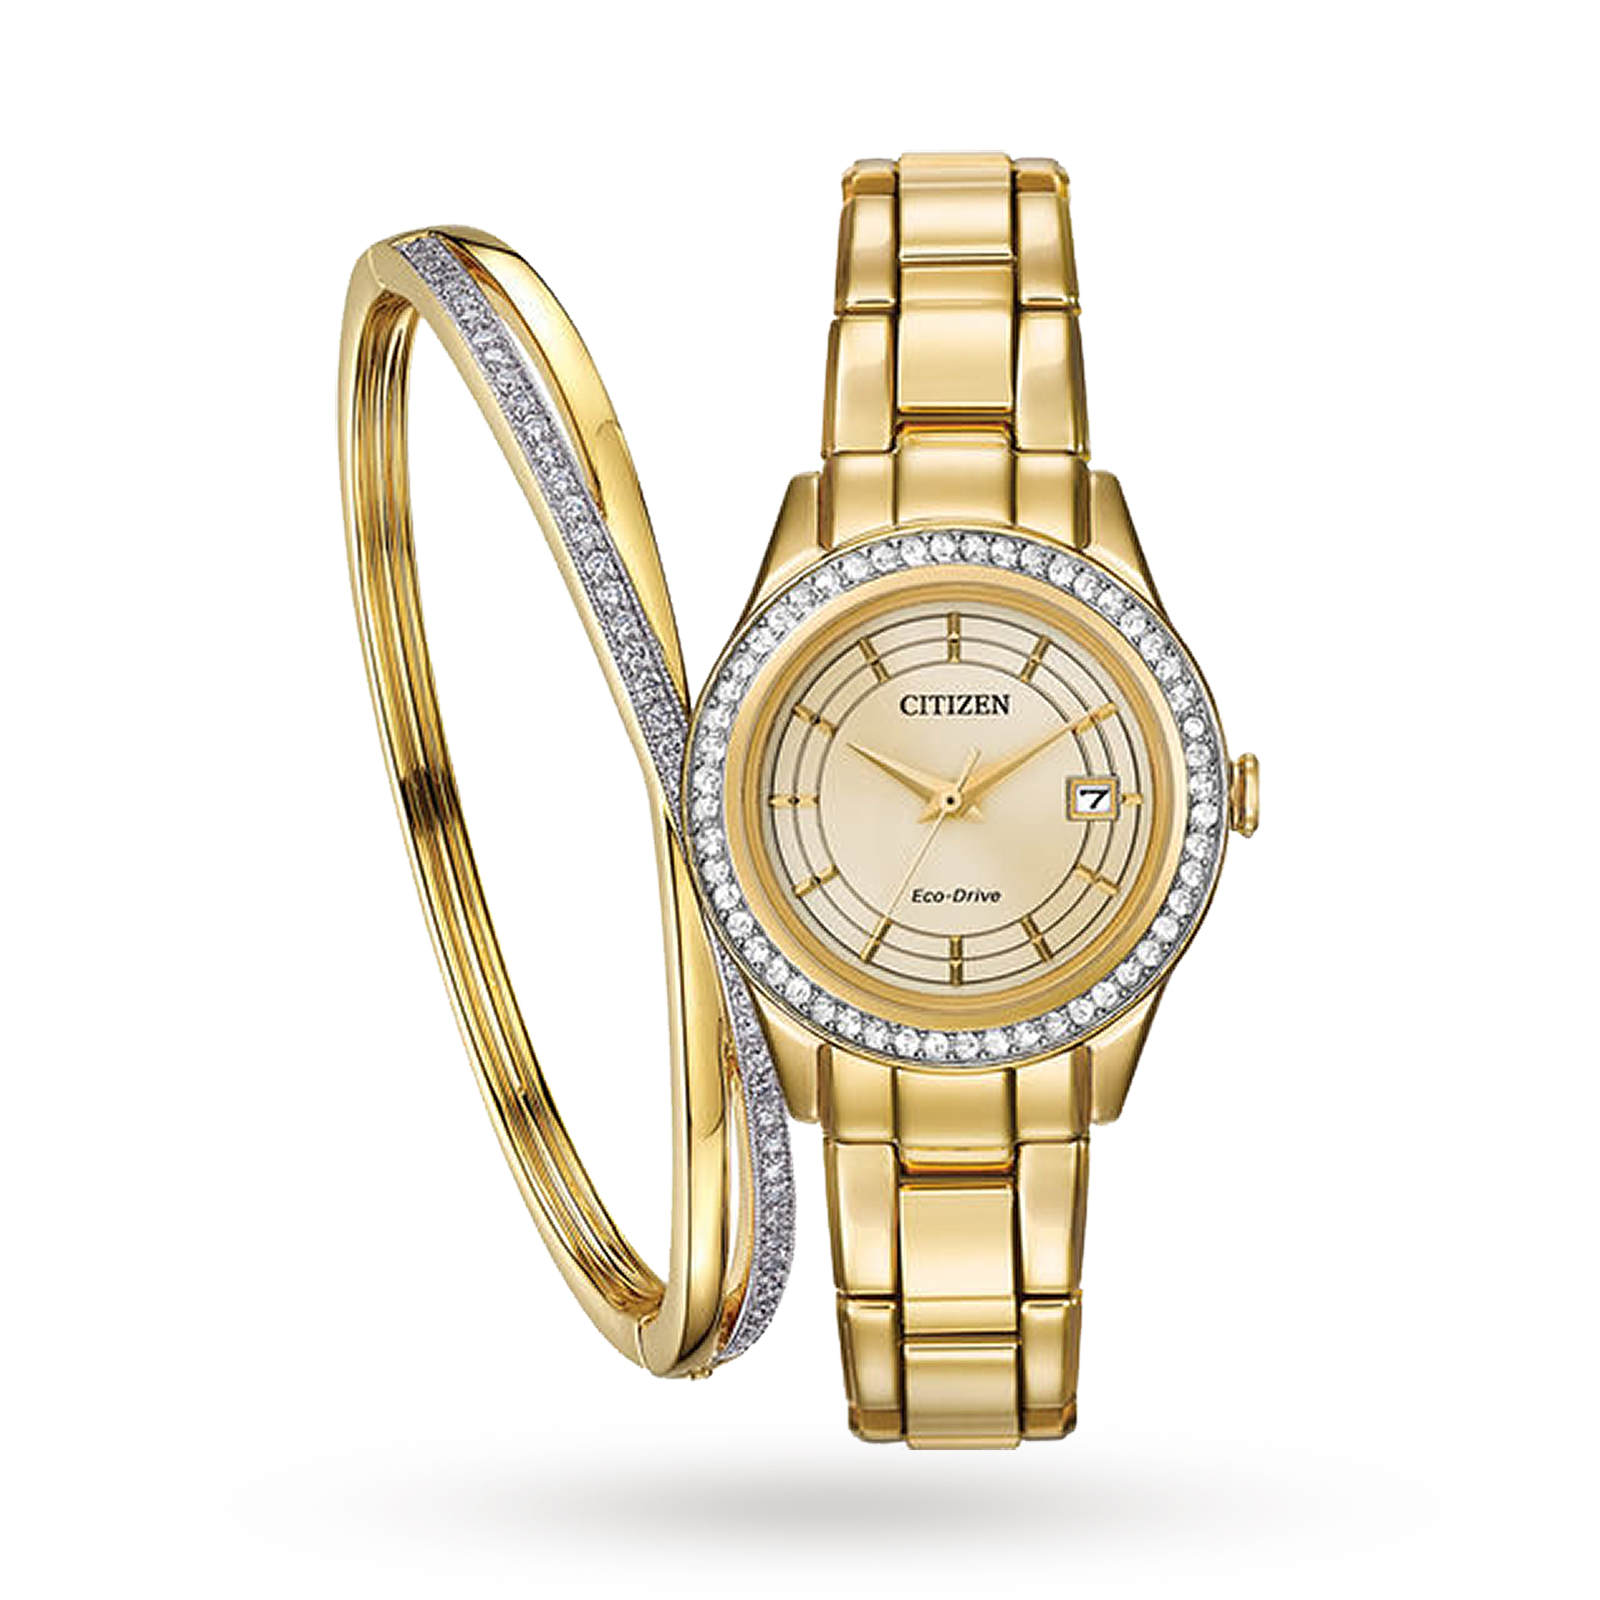 Citizen Eco-Drive Ladies' Gift Set - Exclusive